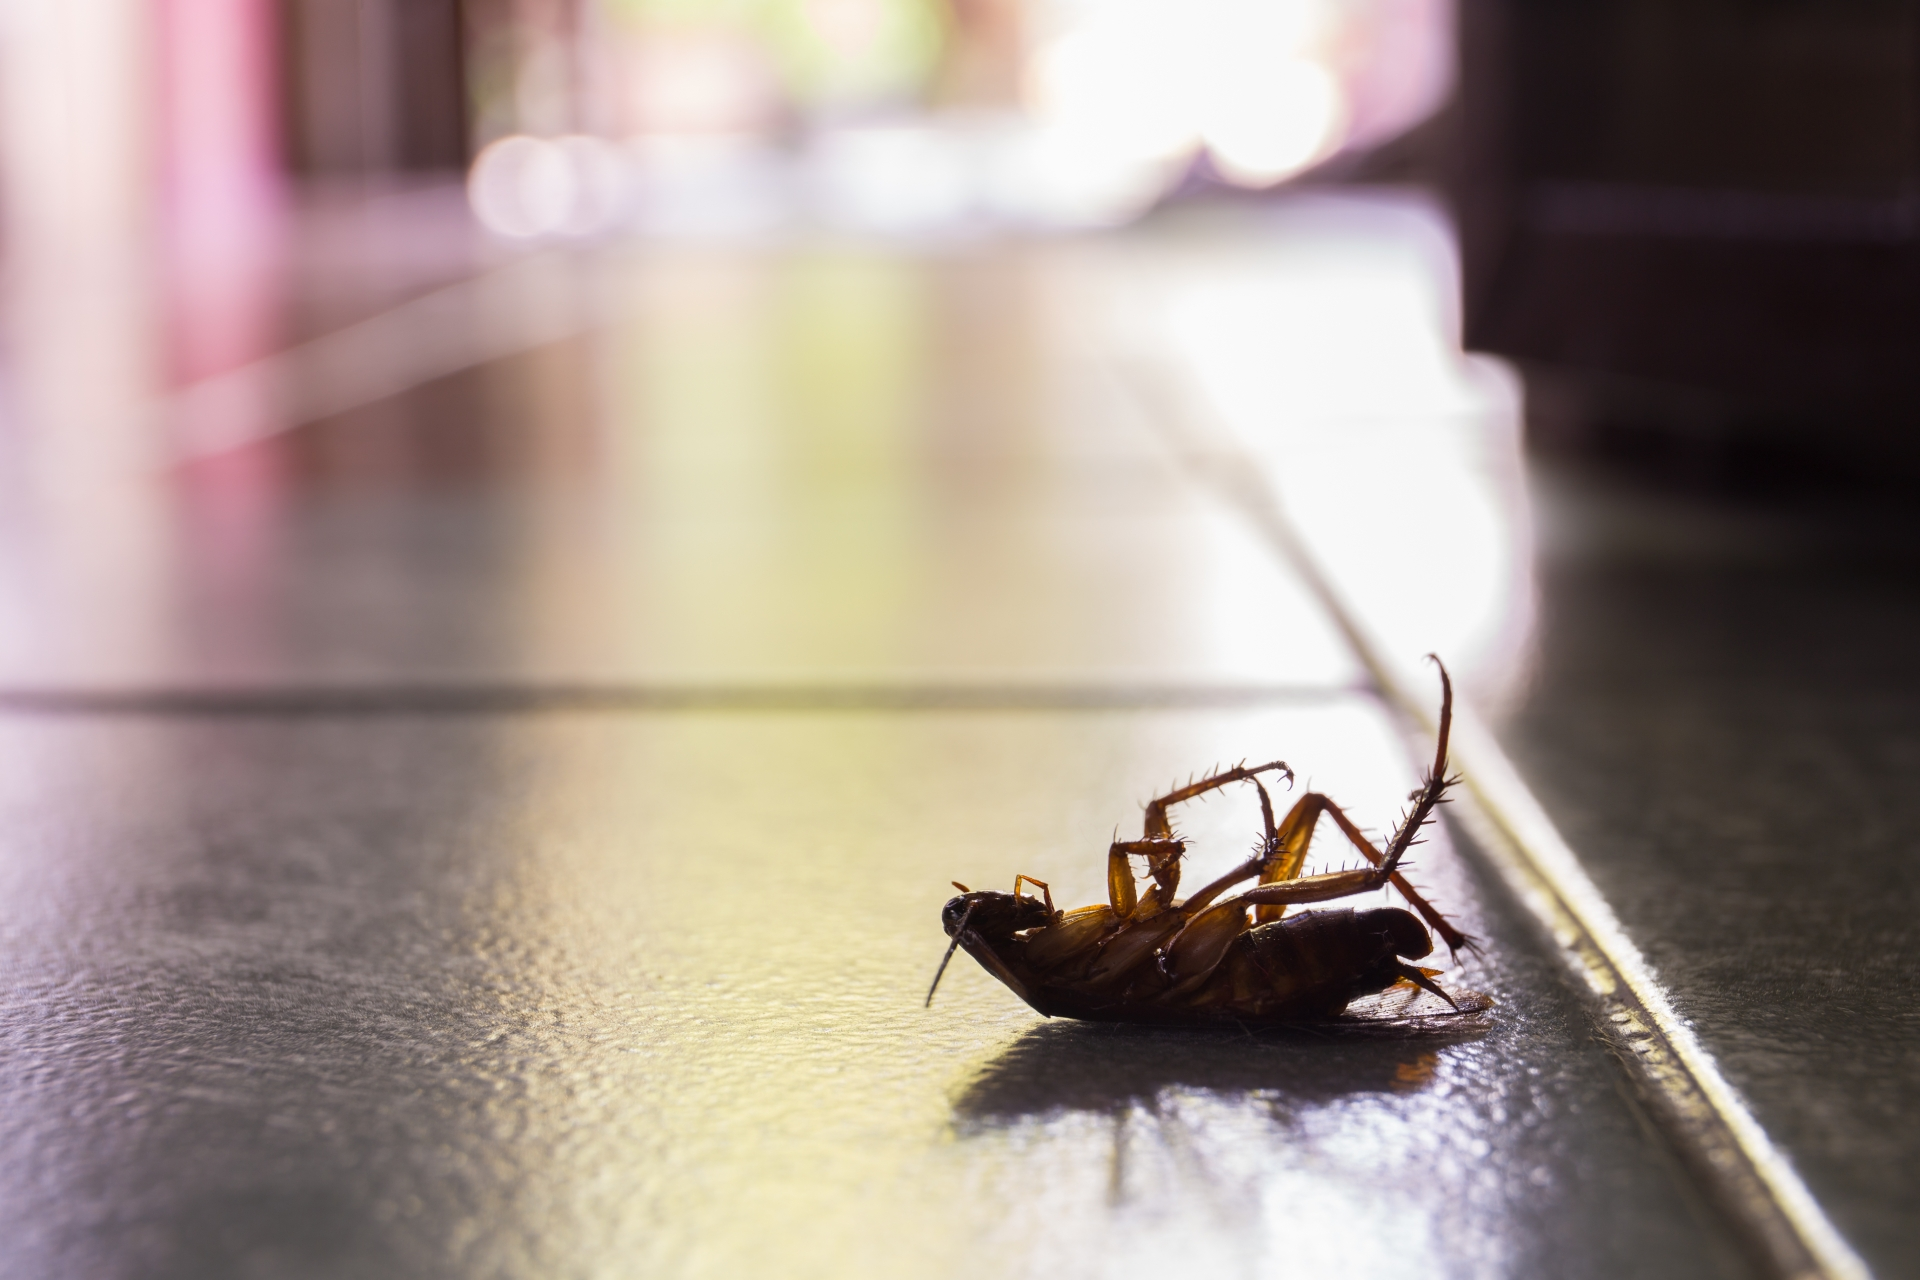 Cockroach Control, Pest Control in West Horsley, East Horsley, Effingham, KT24. Call Now 020 8166 9746